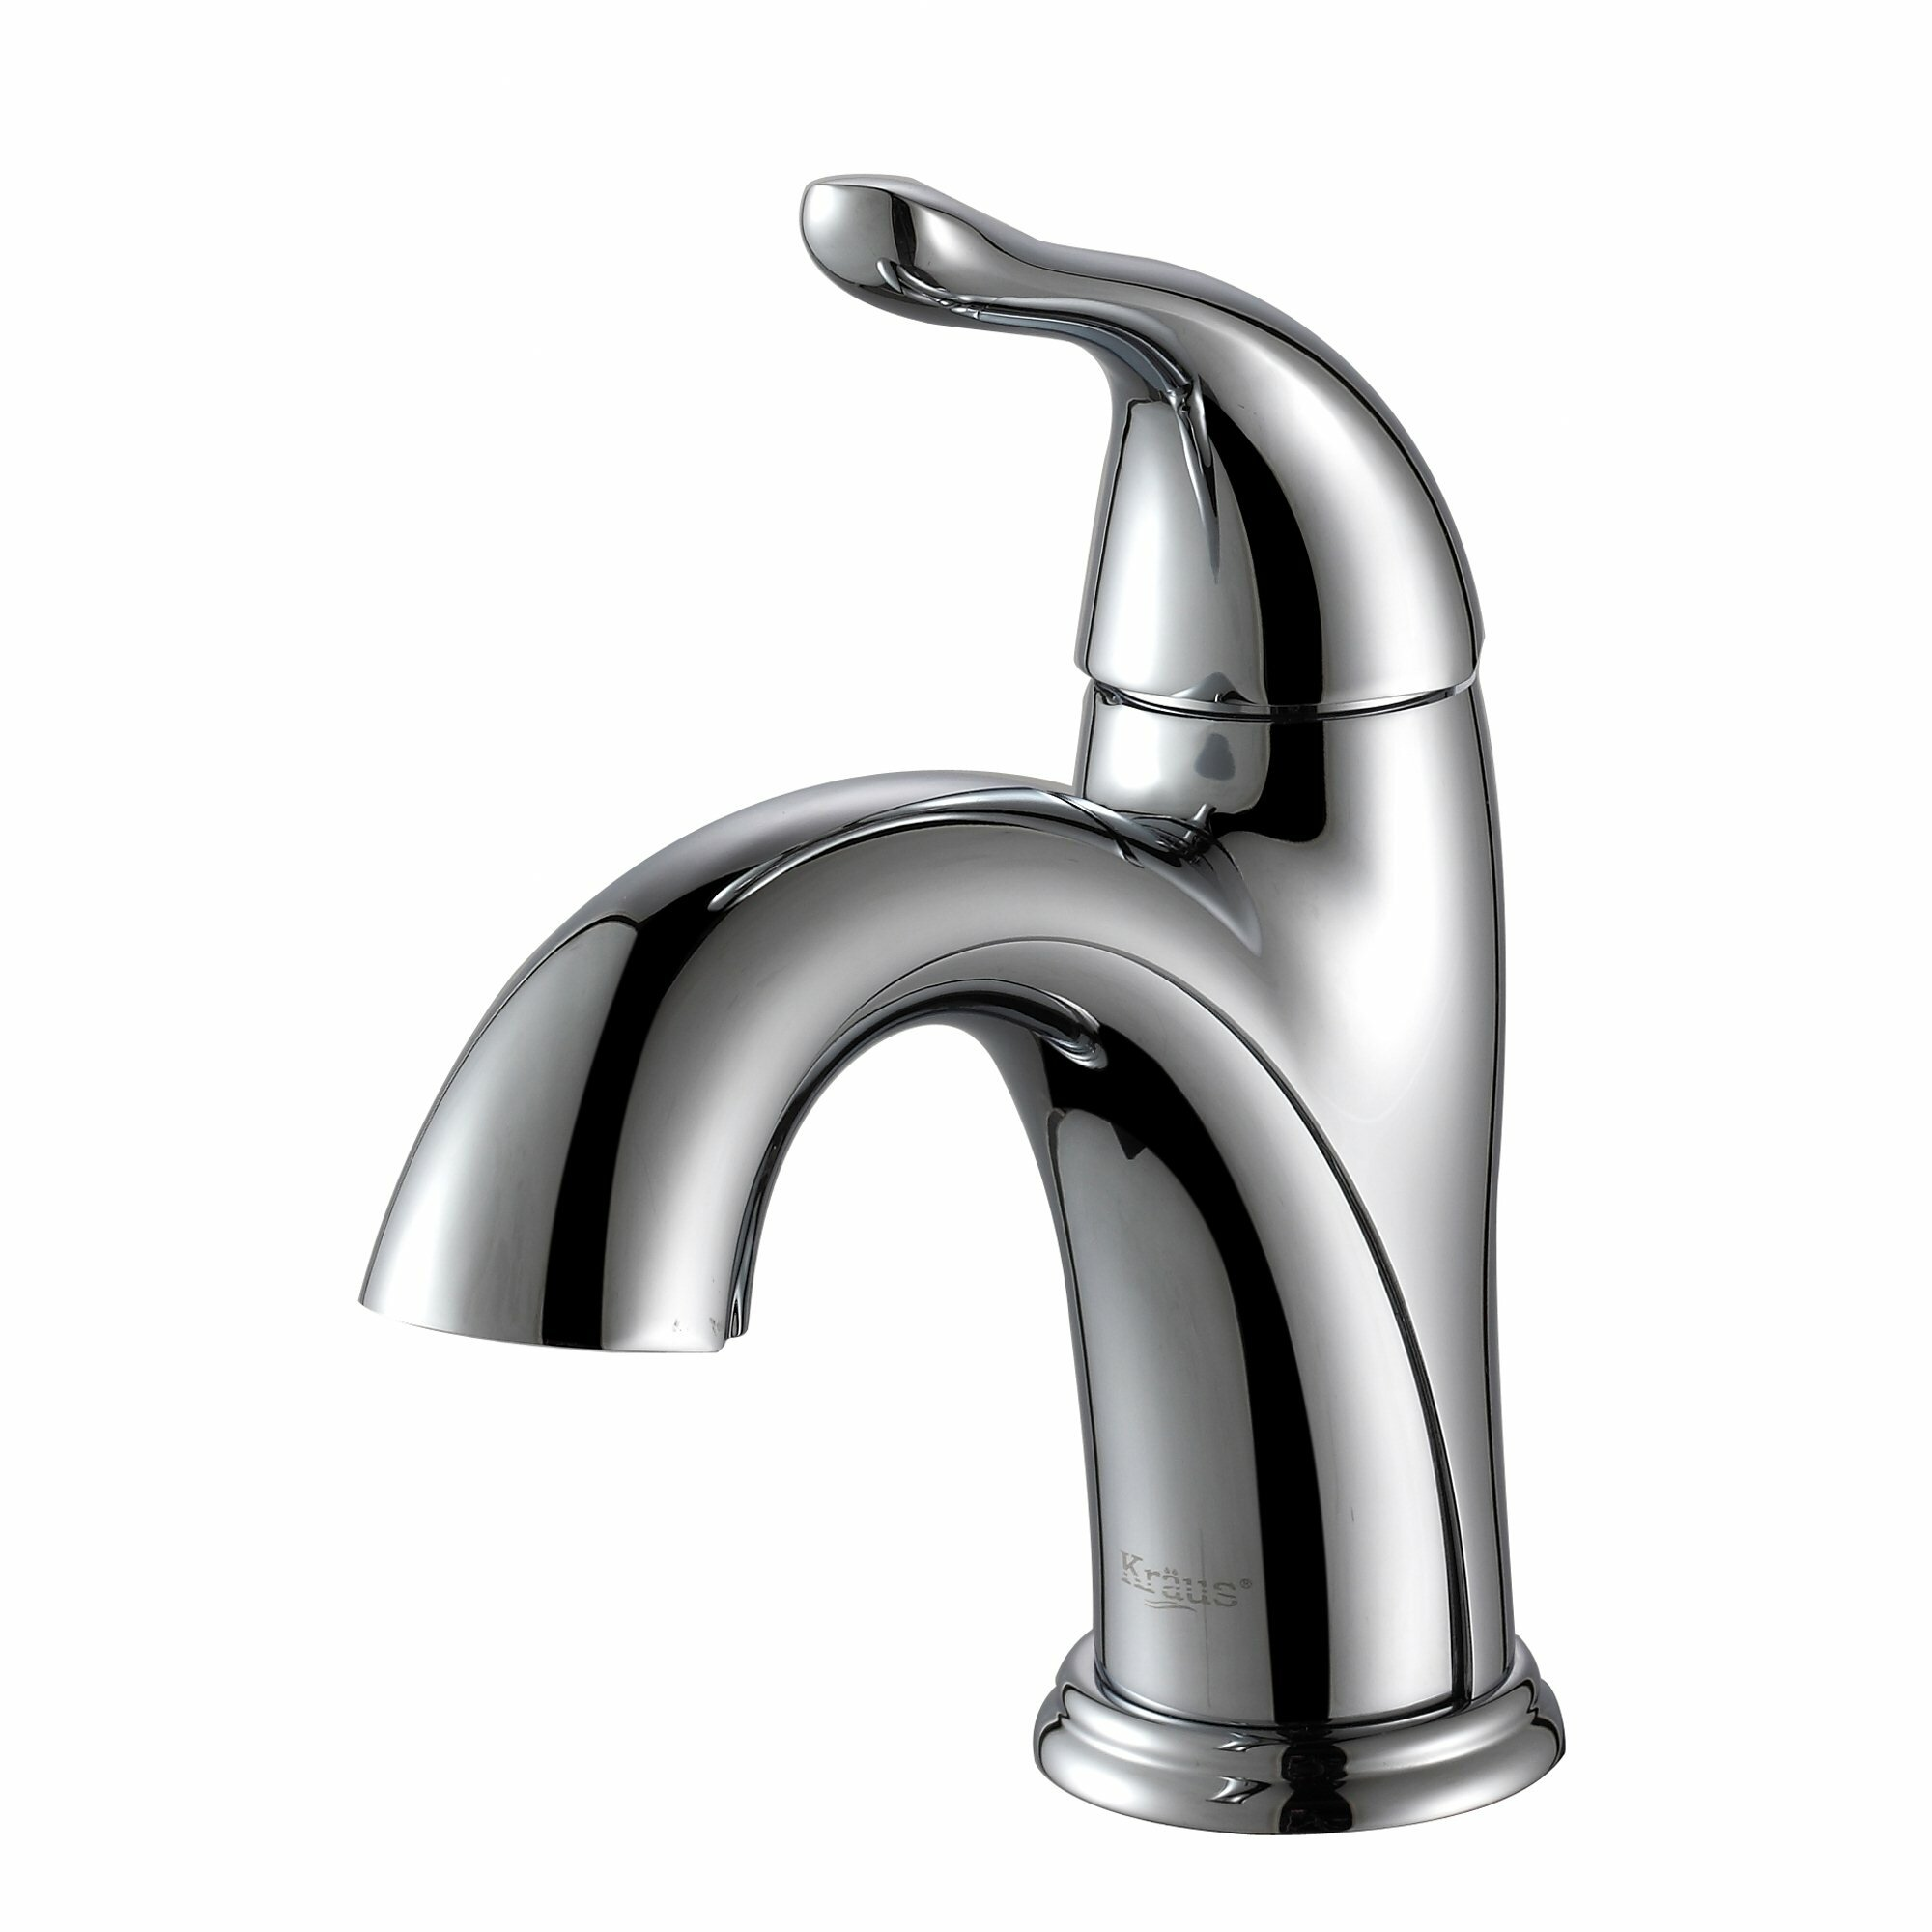 Kraus Faucets Reviews : Kraus Arcus Single Lever Centerset Basin Faucet & Reviews Wayfair